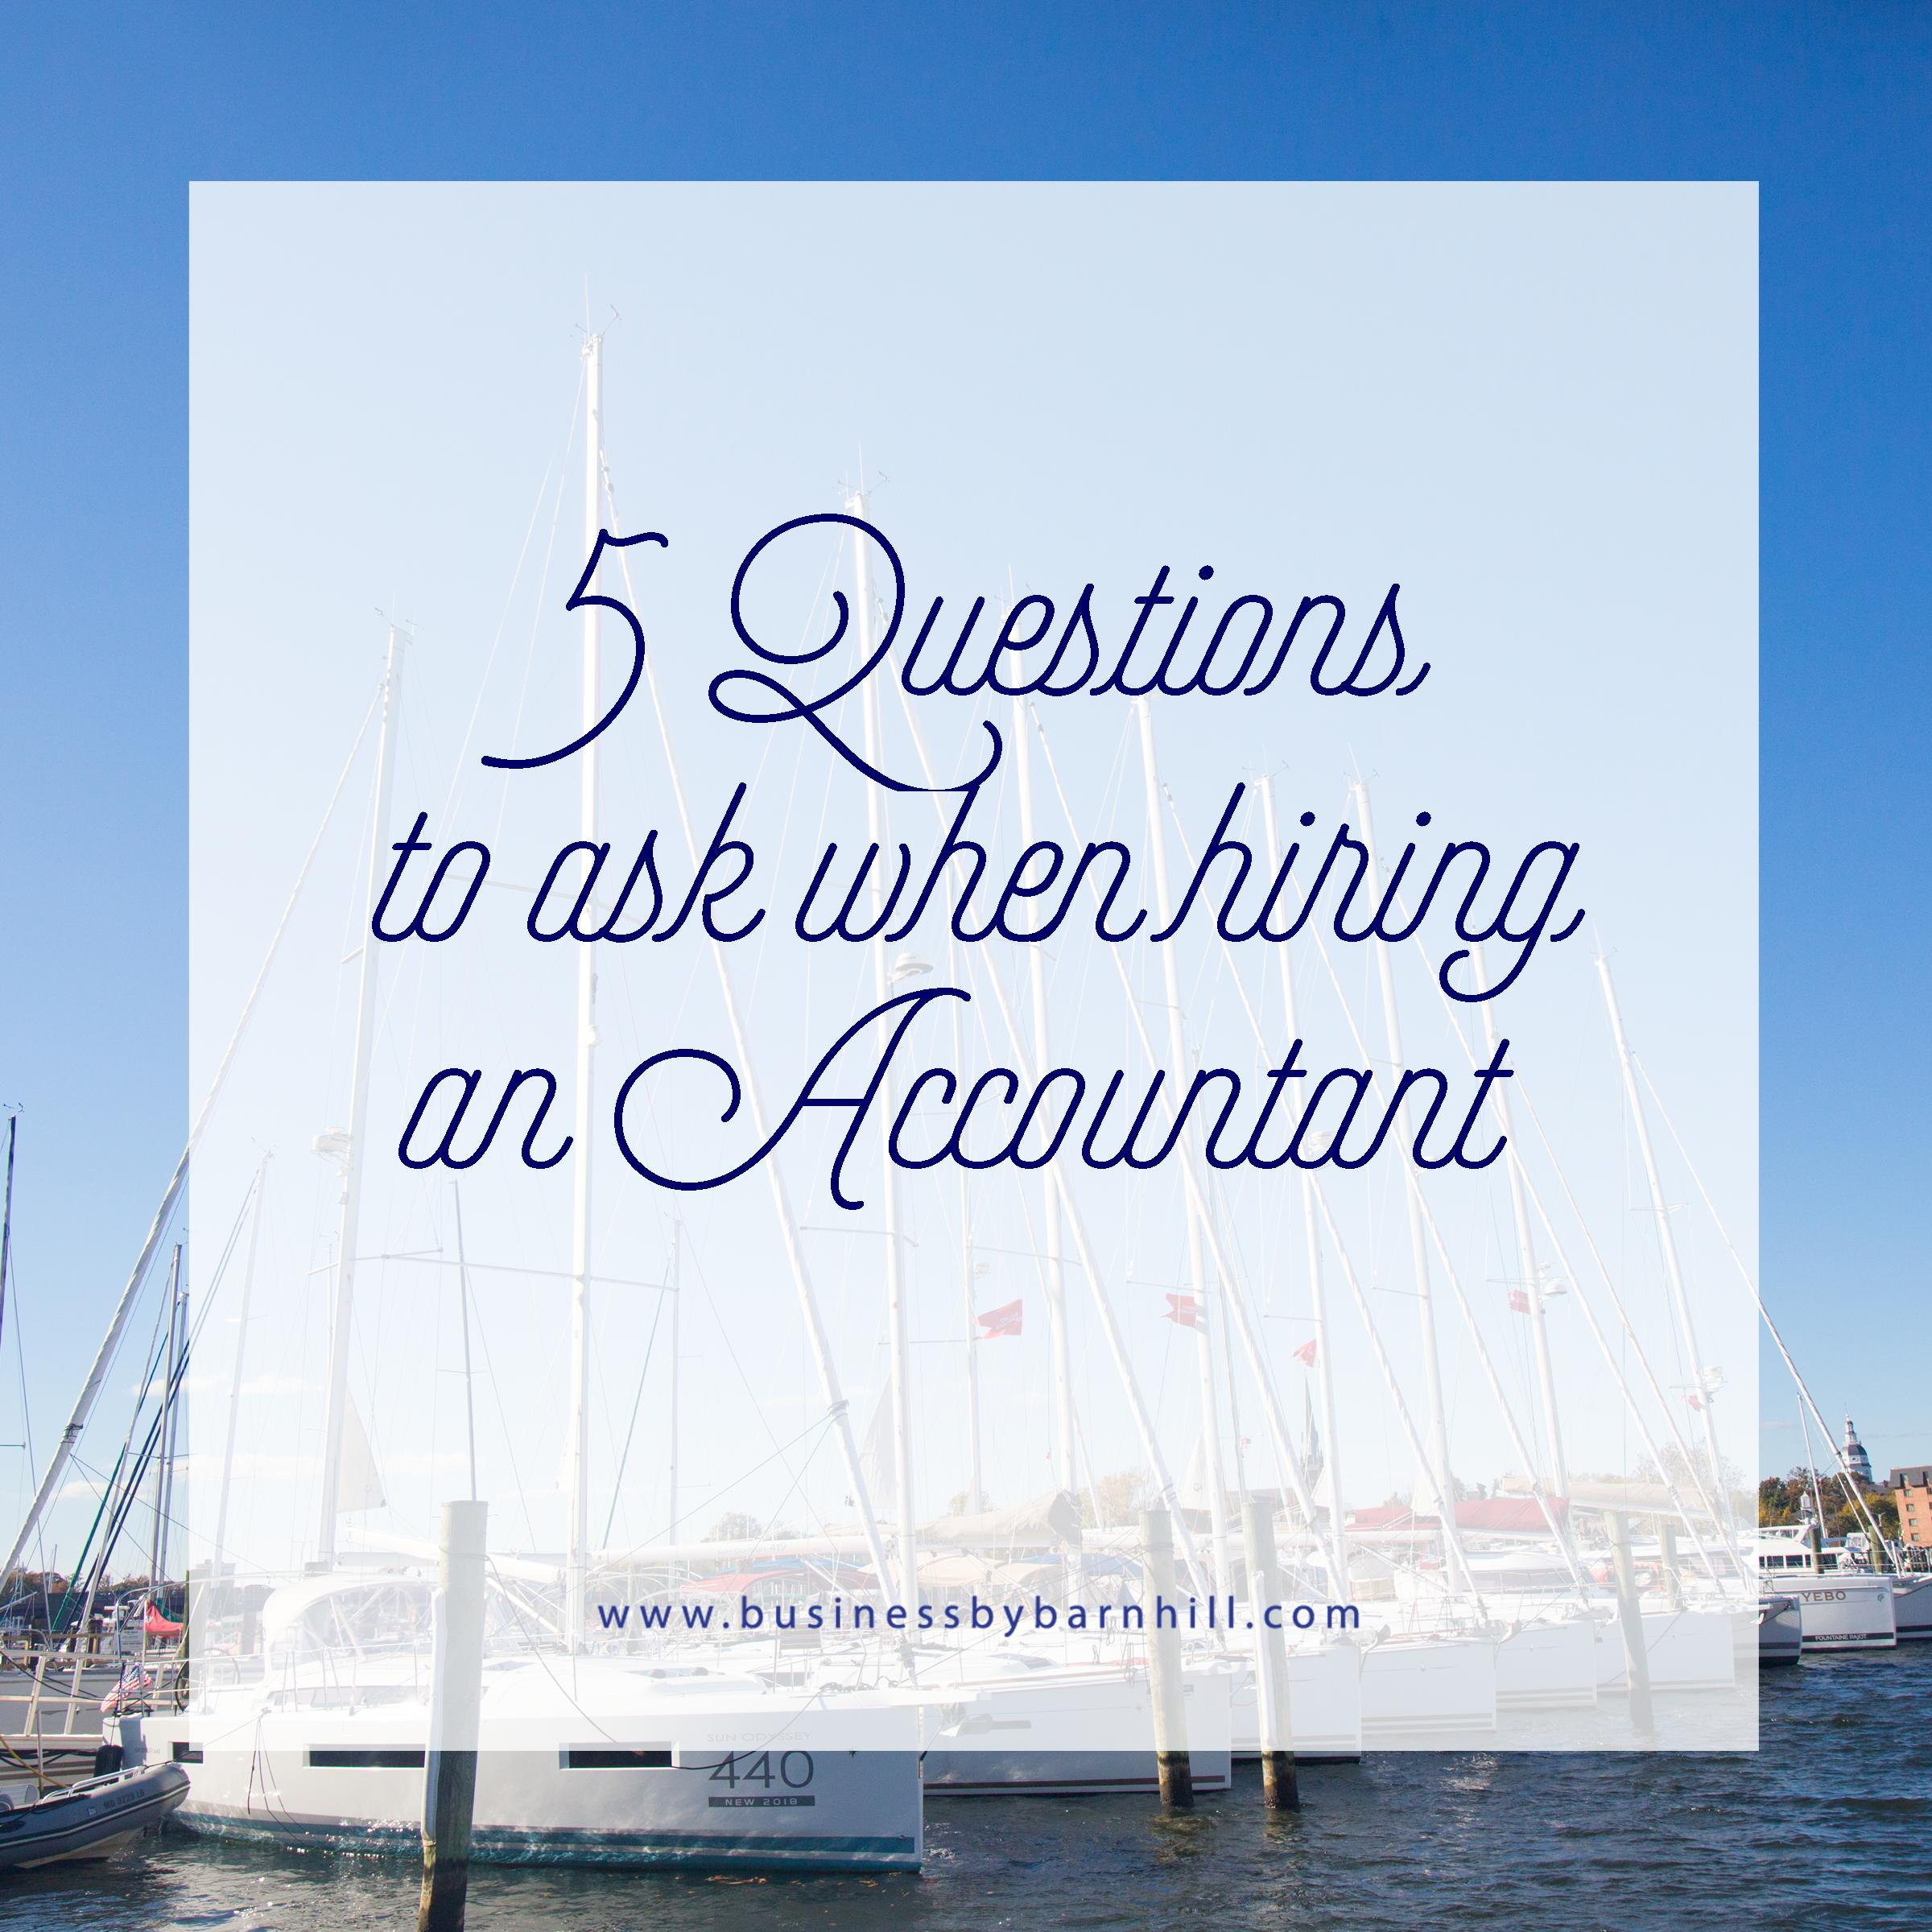 business by barnhill 5 questions to ask when hiring an accountant.jpg